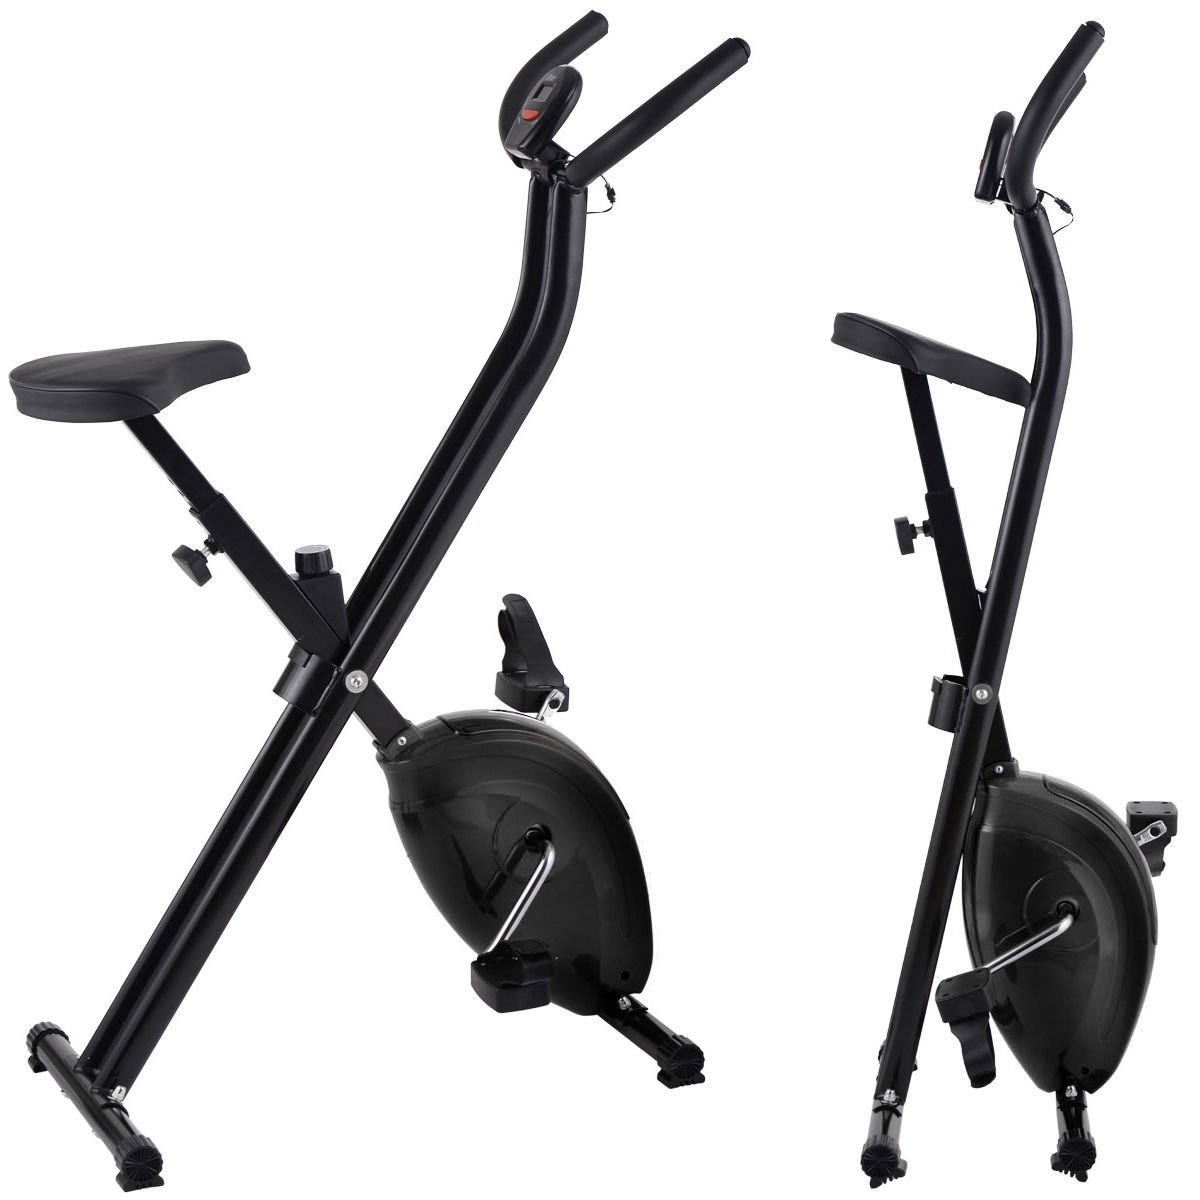 Folding Exercise Bike Home Magnetic Trainer Fitness Stationary Machine New - Black by Eight24hours (Image #7)